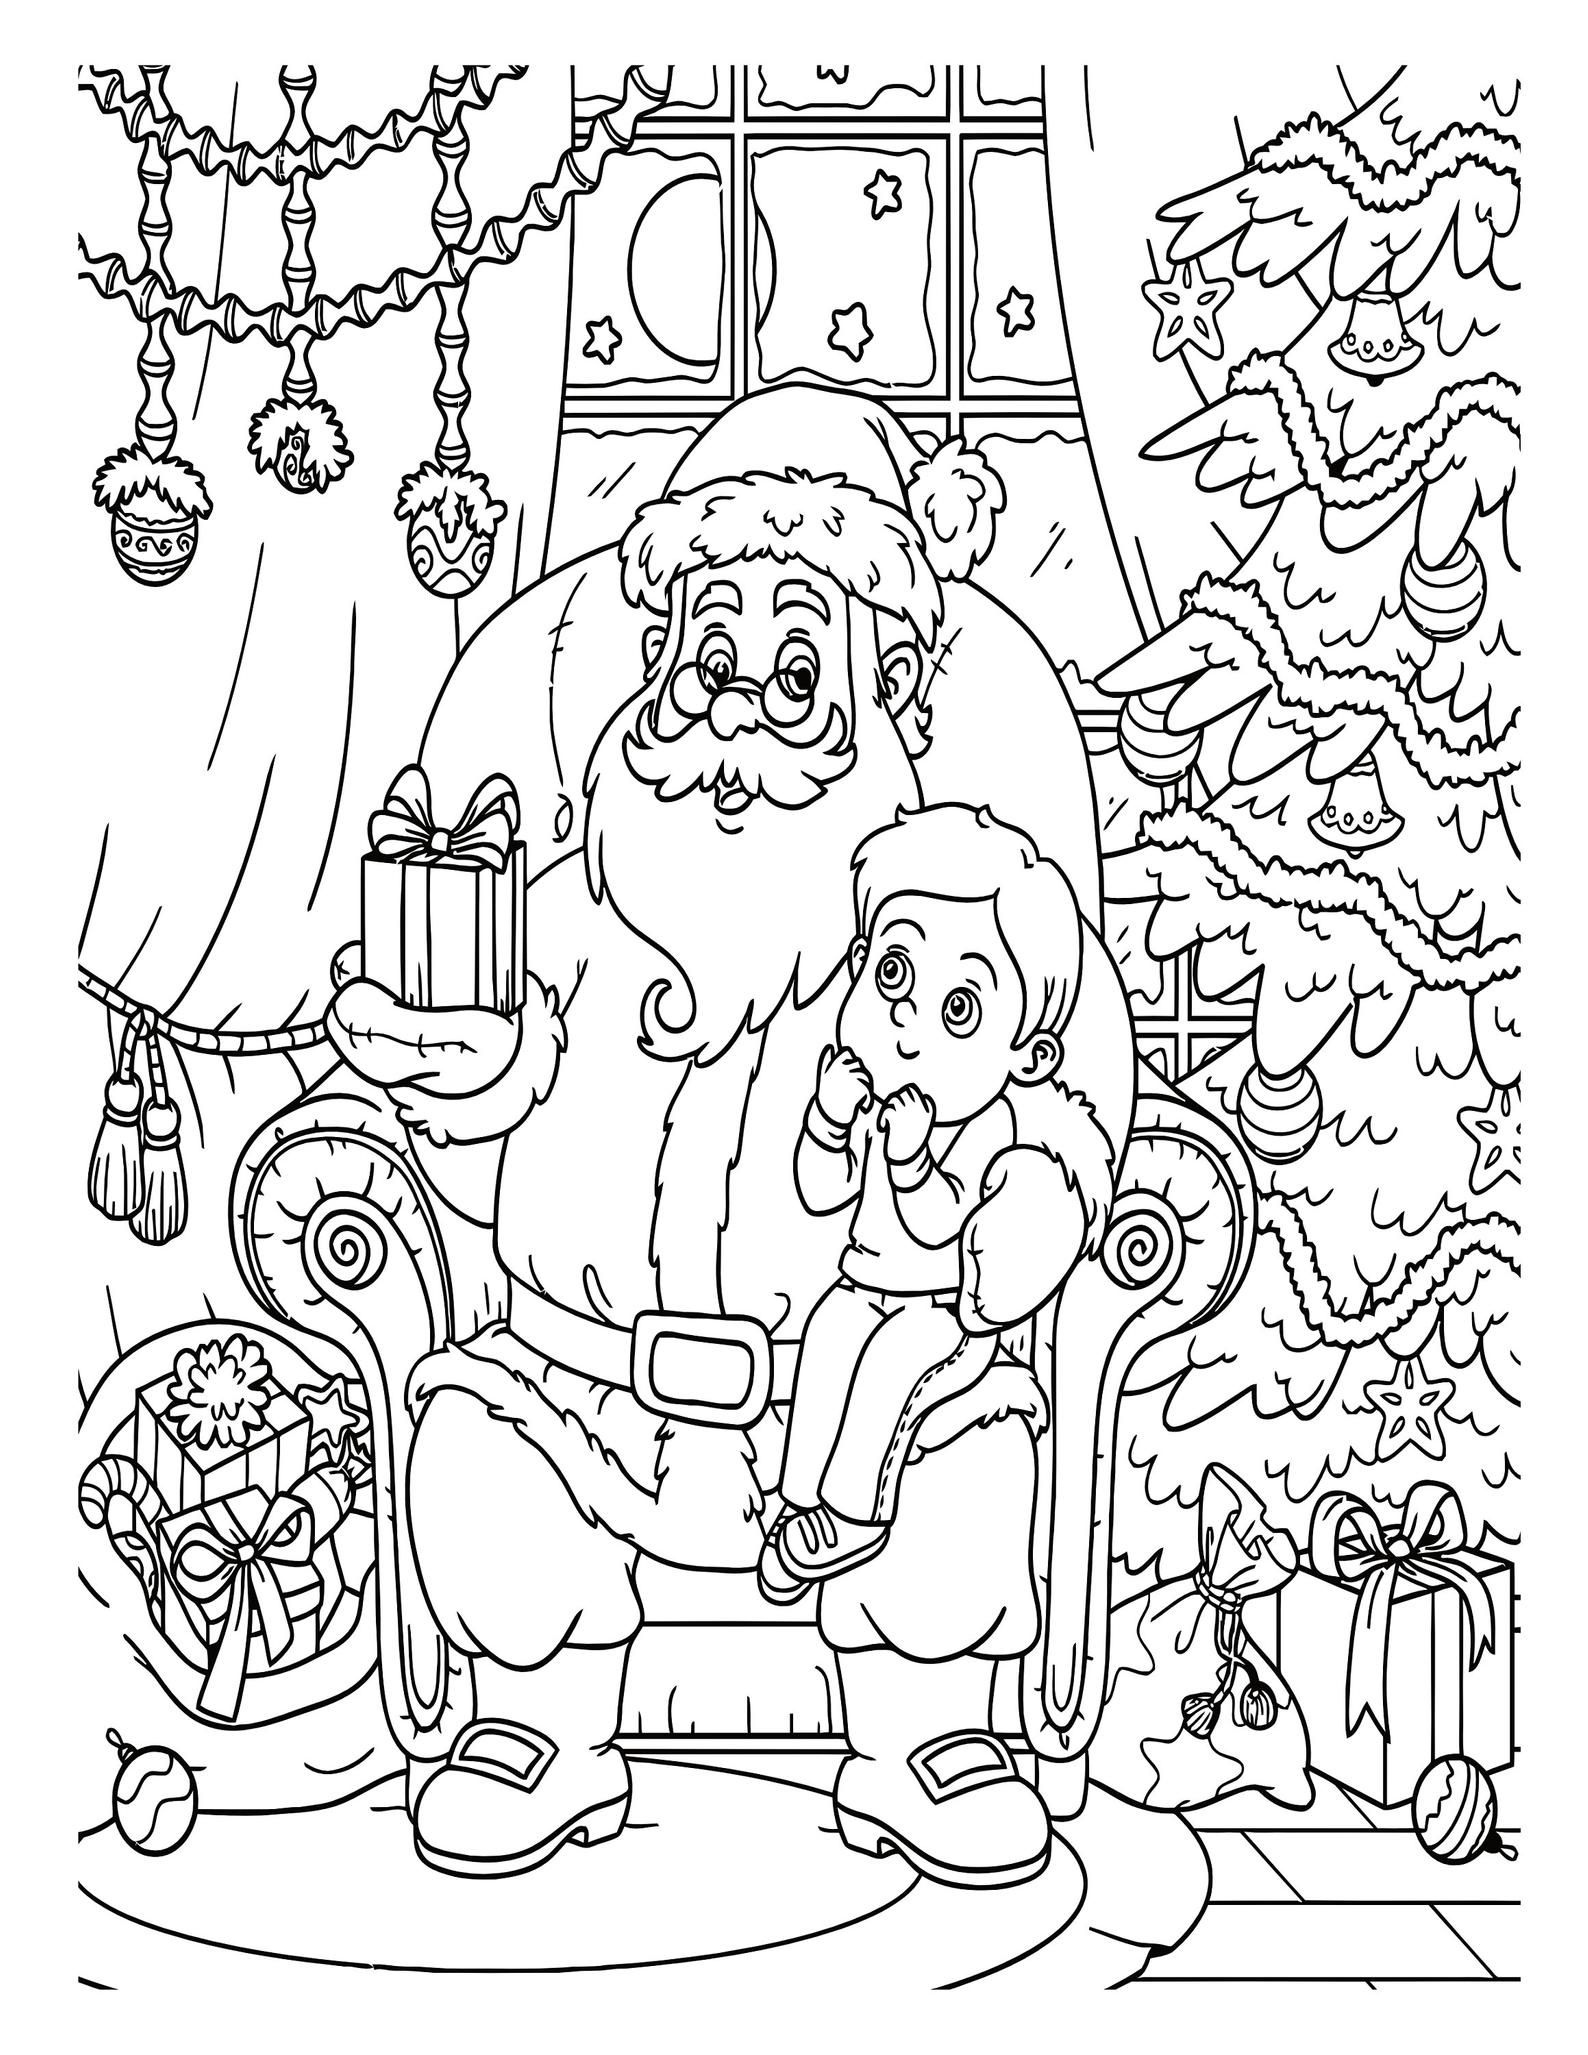 Printable Christmas Coloring Pages For Kids 60 Xmas Coloring Etsy In 2021 Printable Christmas Coloring Pages Christmas Coloring Pages Santa Coloring Pages